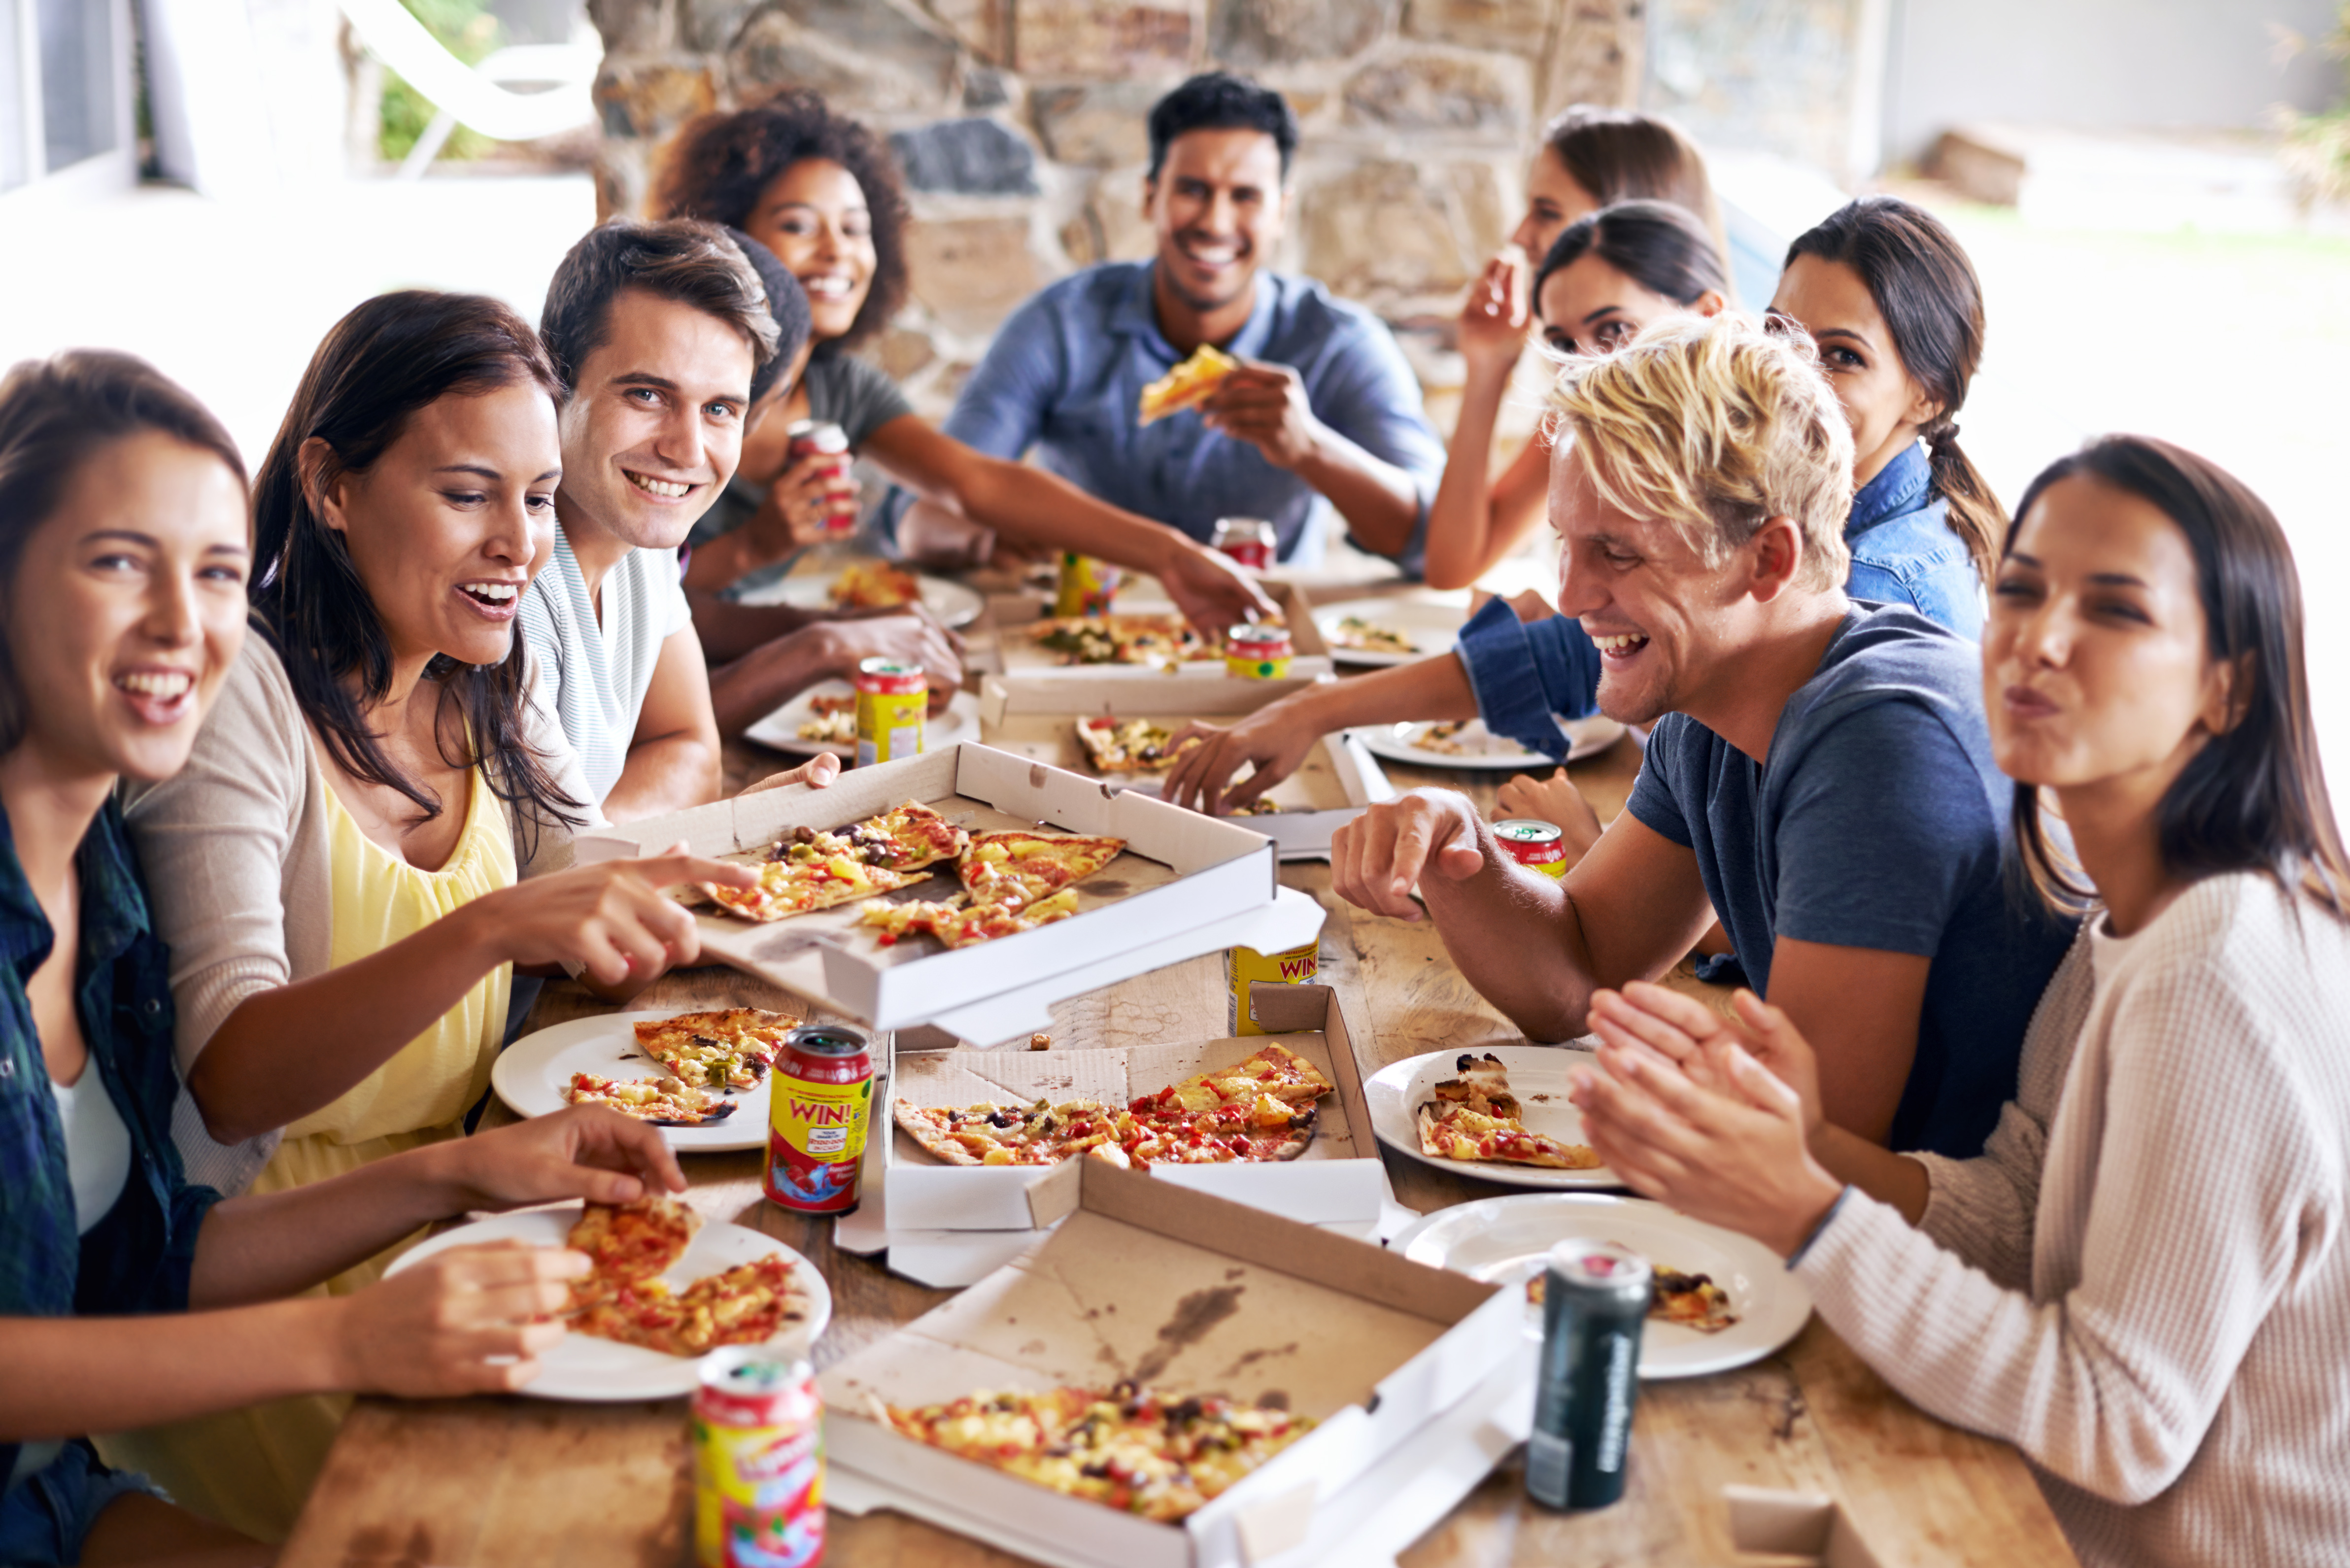 It's time for a pizza party!